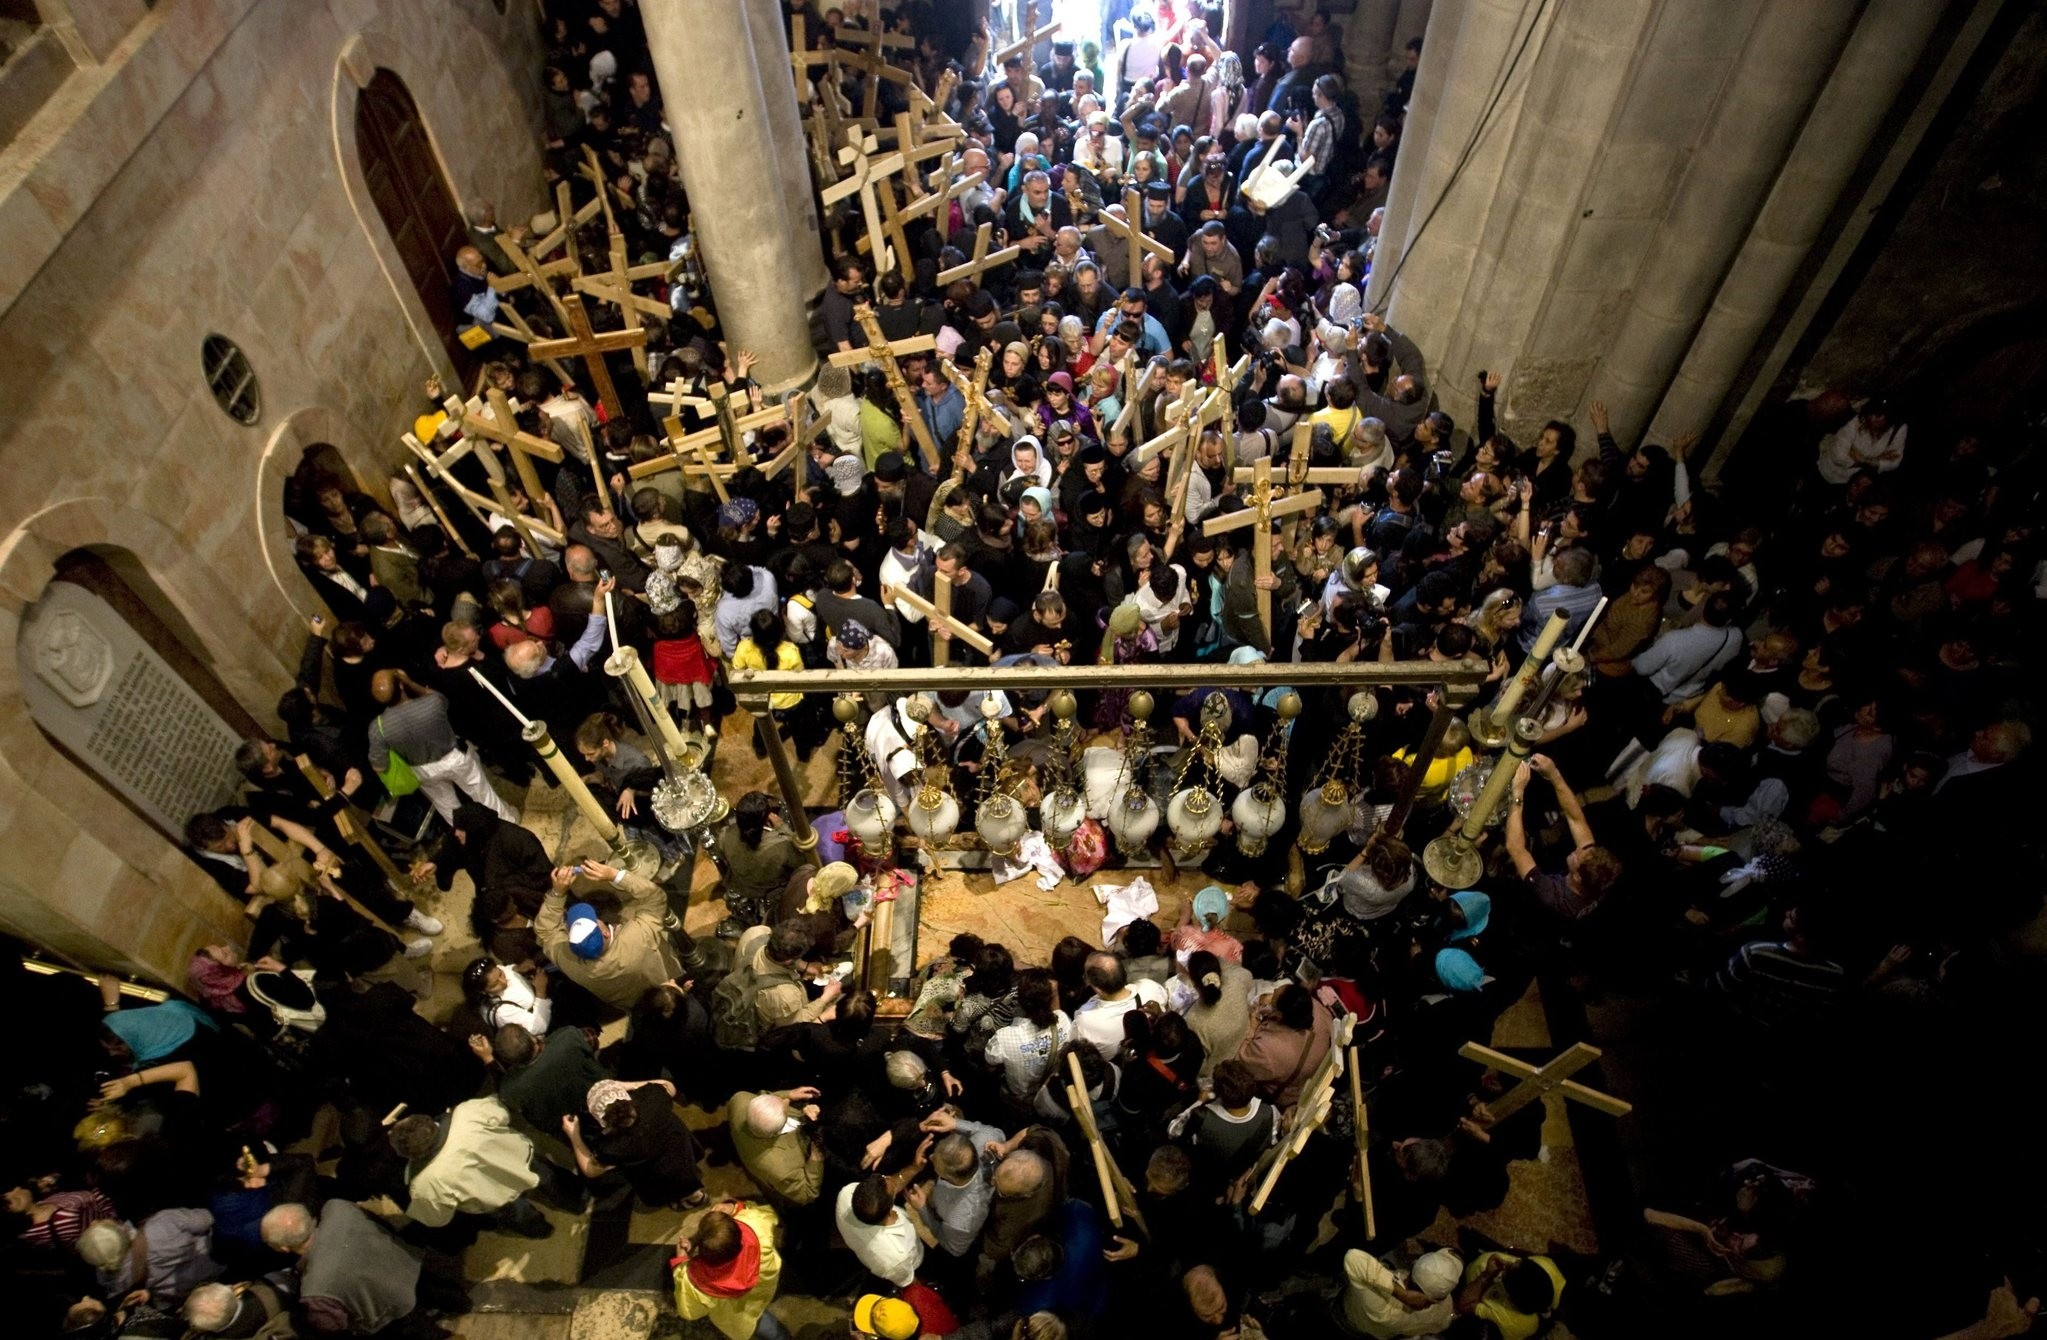 Christian worshipers walk the stone of atonement as they enter the Holy Sepluchre Church in Jerusalem's Old City during a Good Friday procession on April 2, 2010. (AFP Photo)